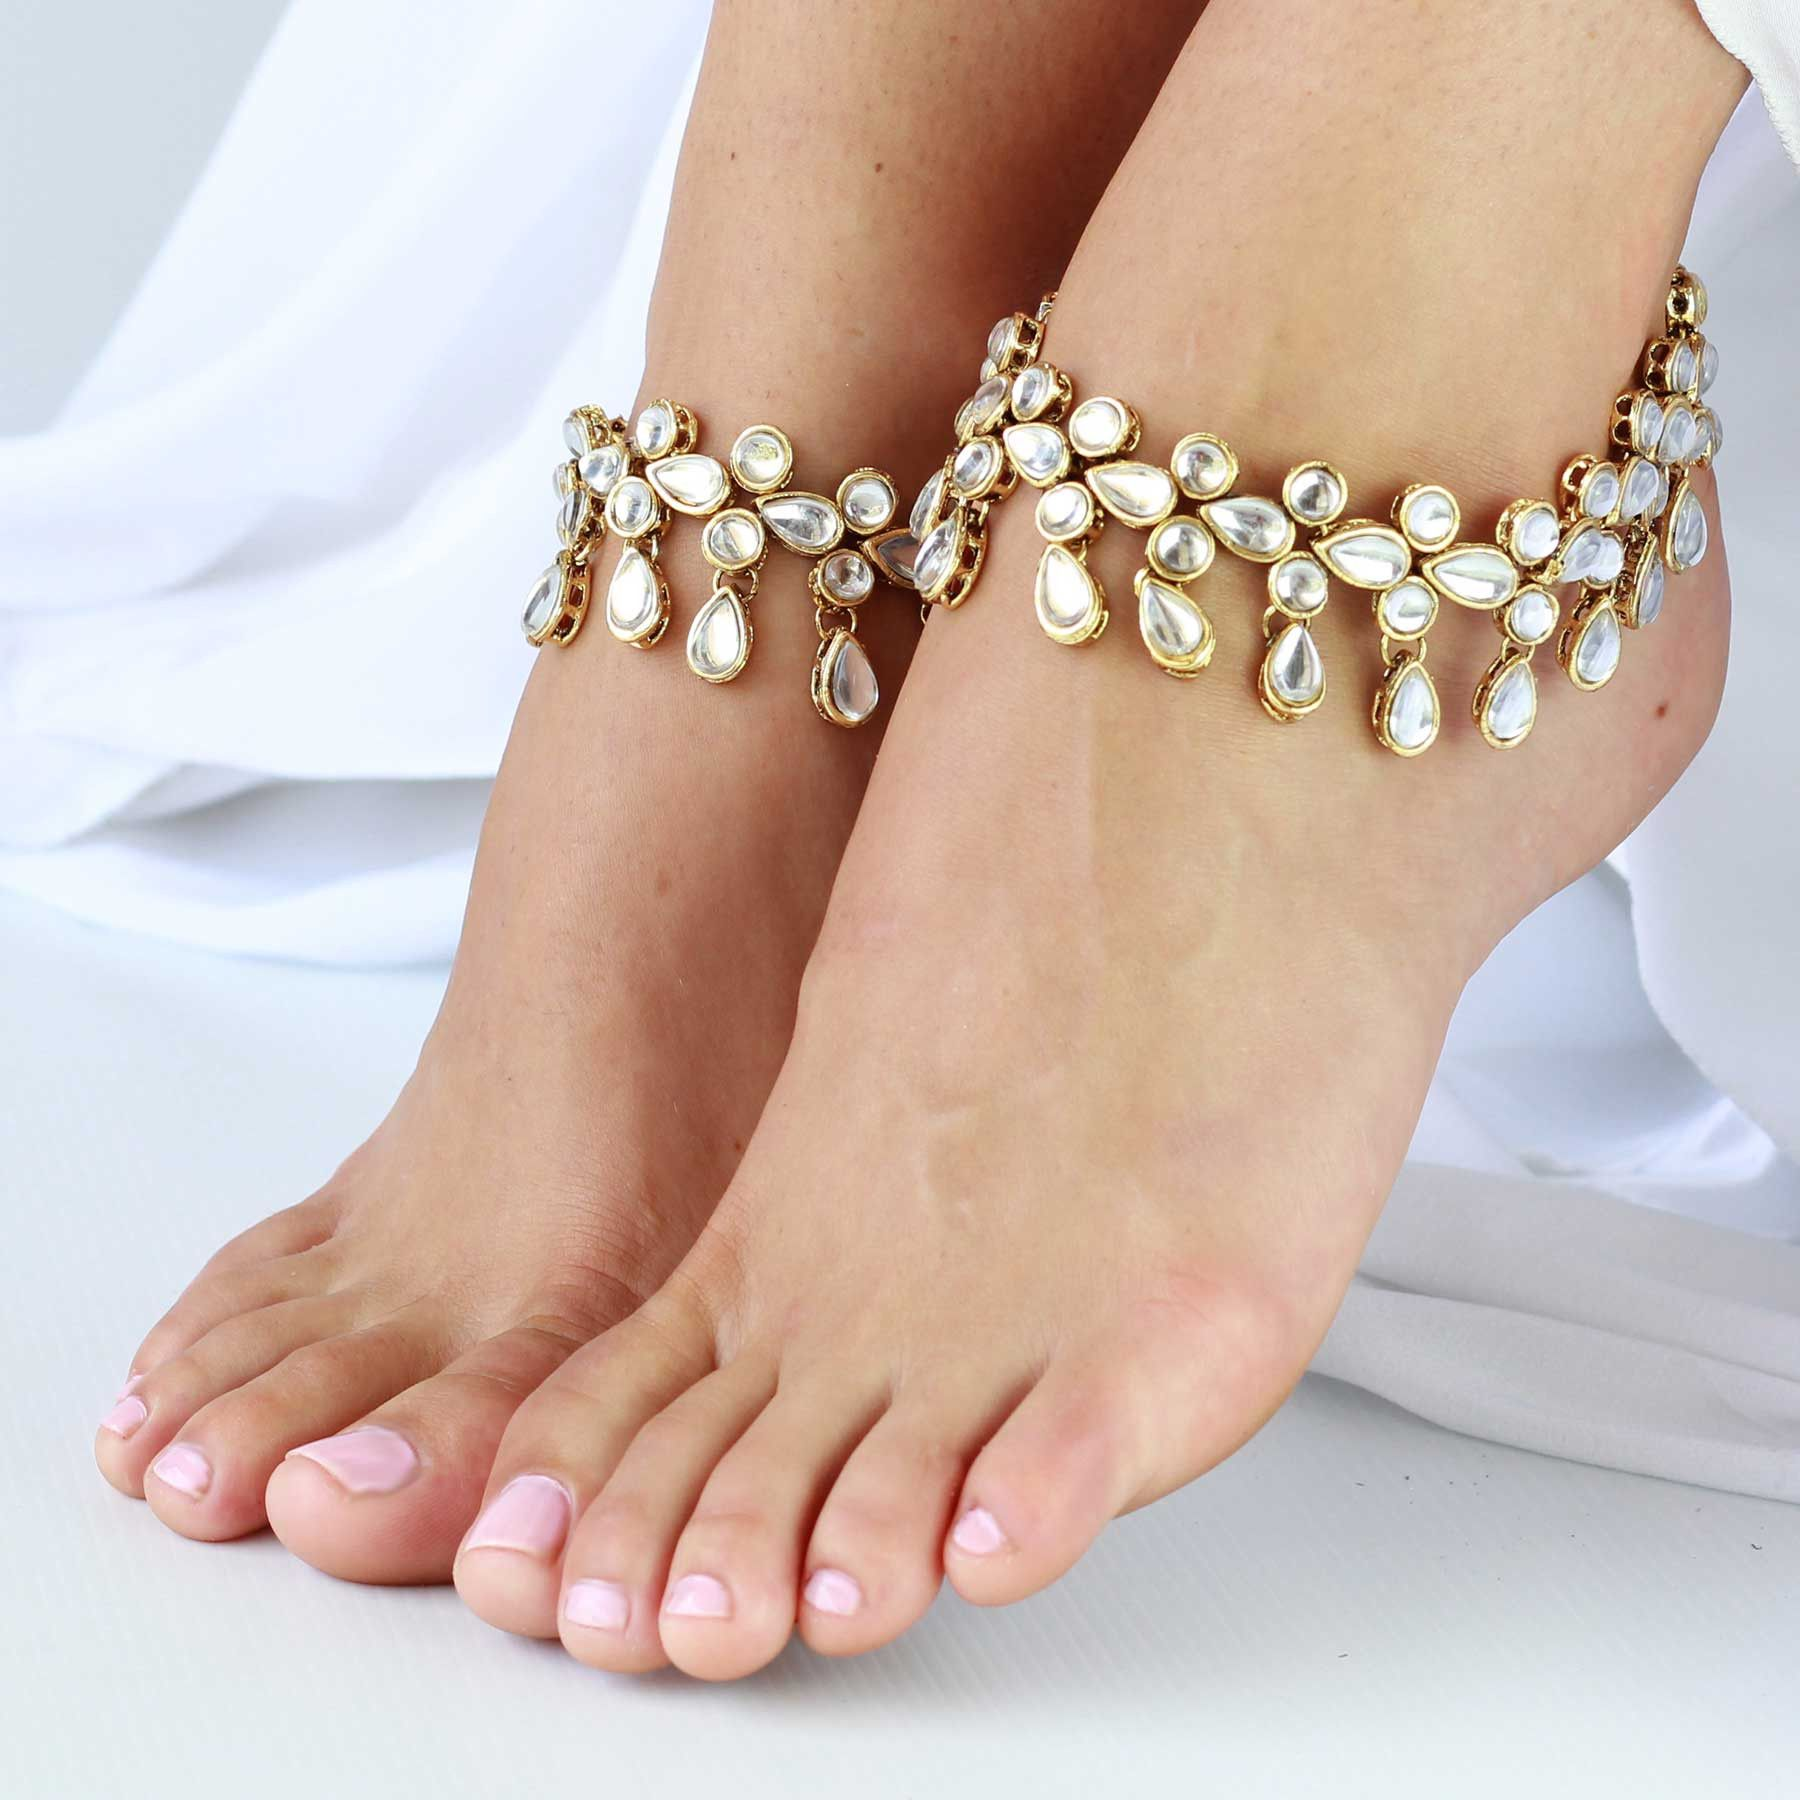 jewelry fairybones sandals foot barefoot on anklet beach silver by wedding pin rhinestone